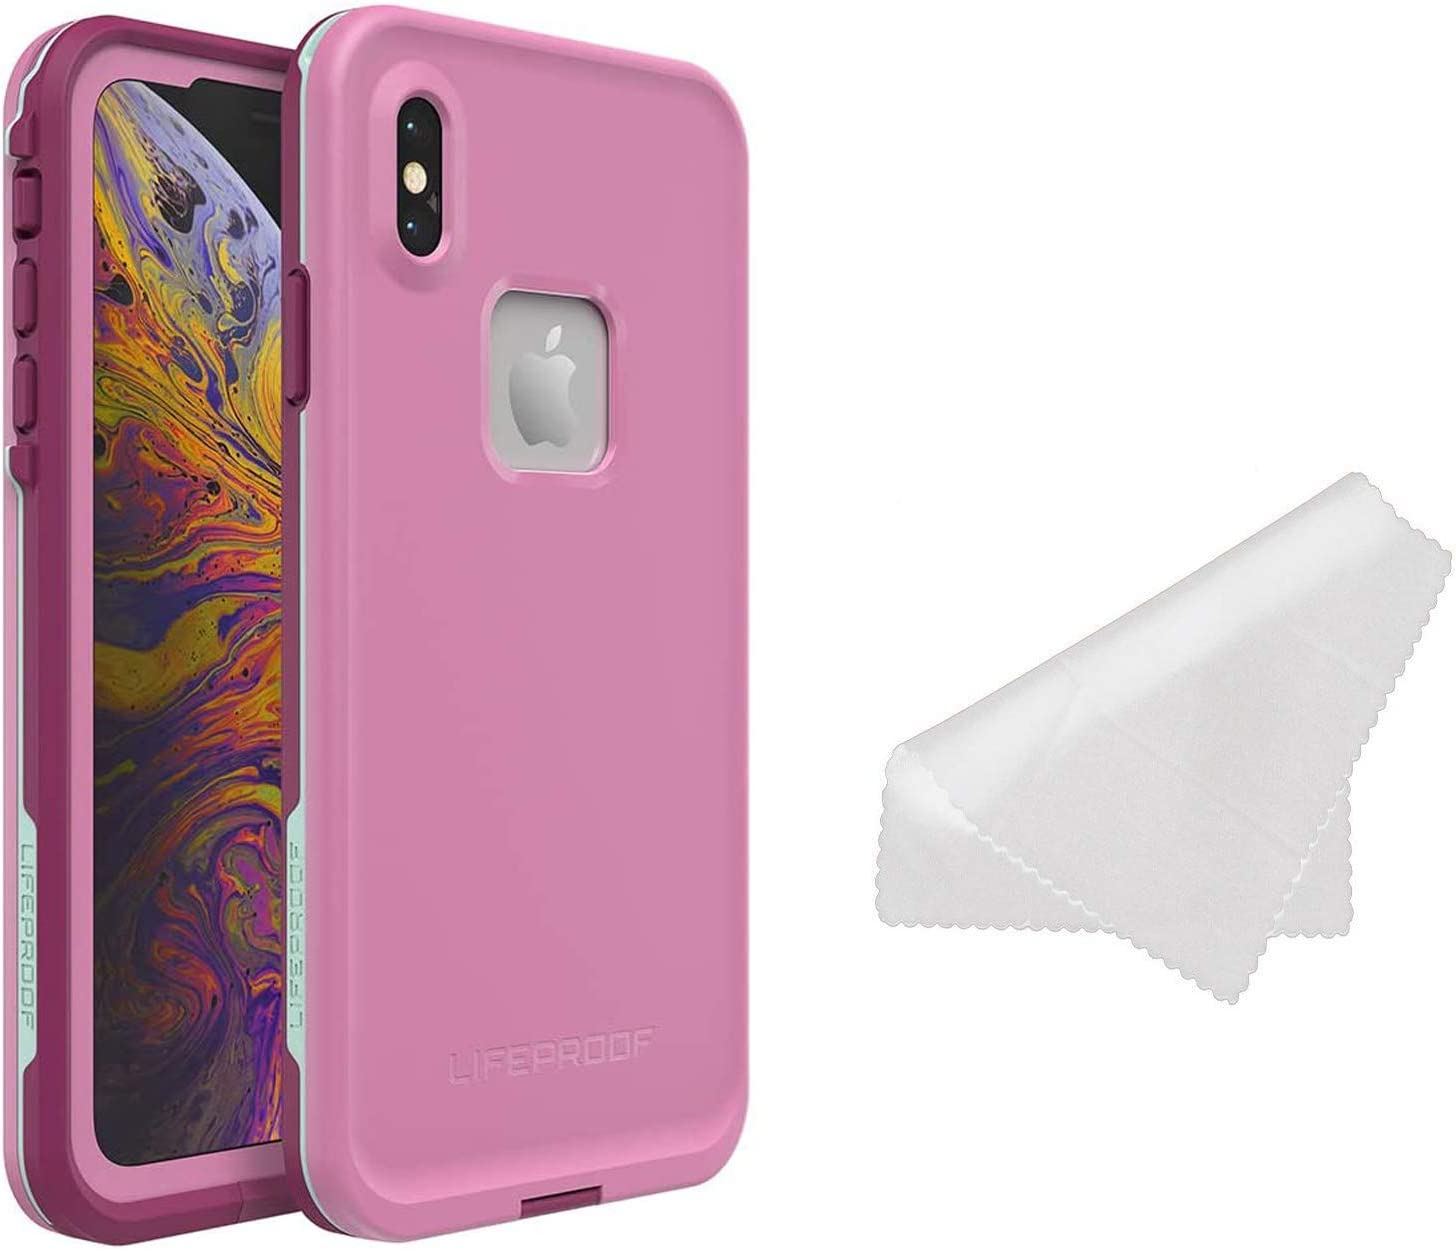 LifeProof FRĒ Series Waterproof Case for iPhone Xs Max (ONLY) with Cleaning Cloth - Retail Packaging - Frost BITE (Orchid/Purple Wine/FAIR Aqua)